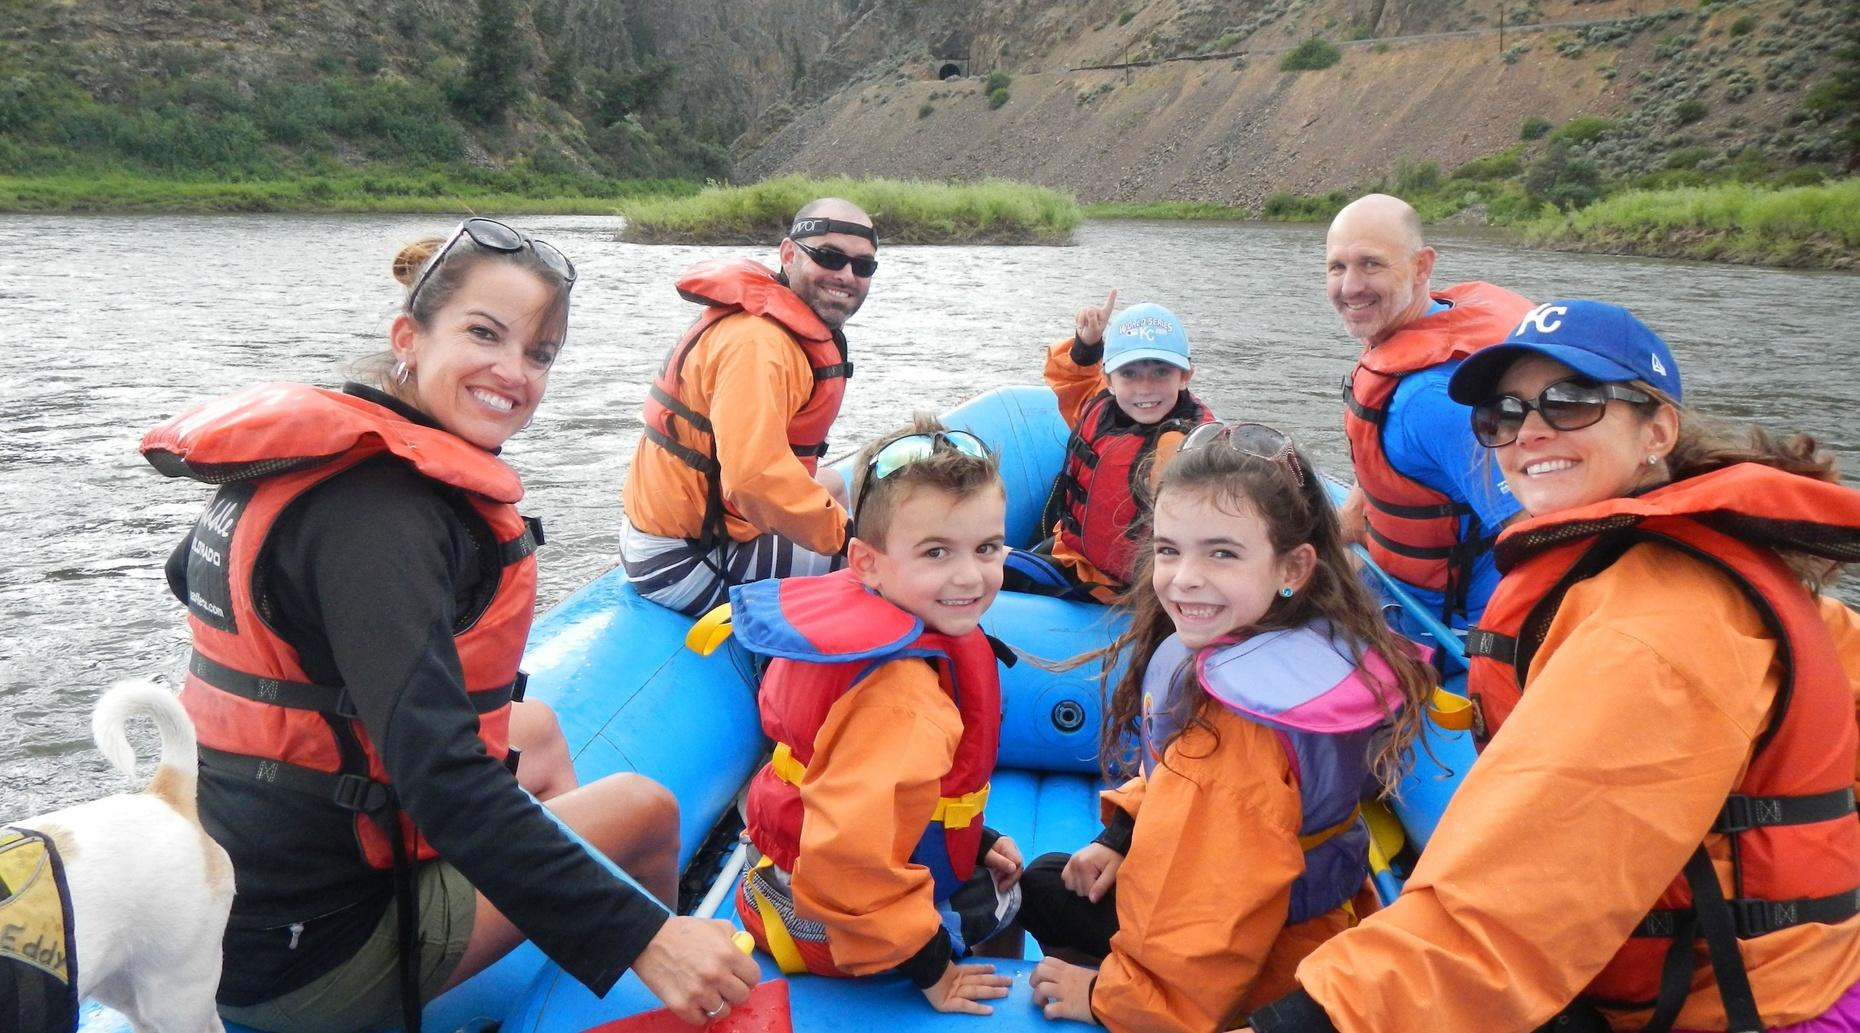 Colorado River Afternoon Half-Day Rafting Tour